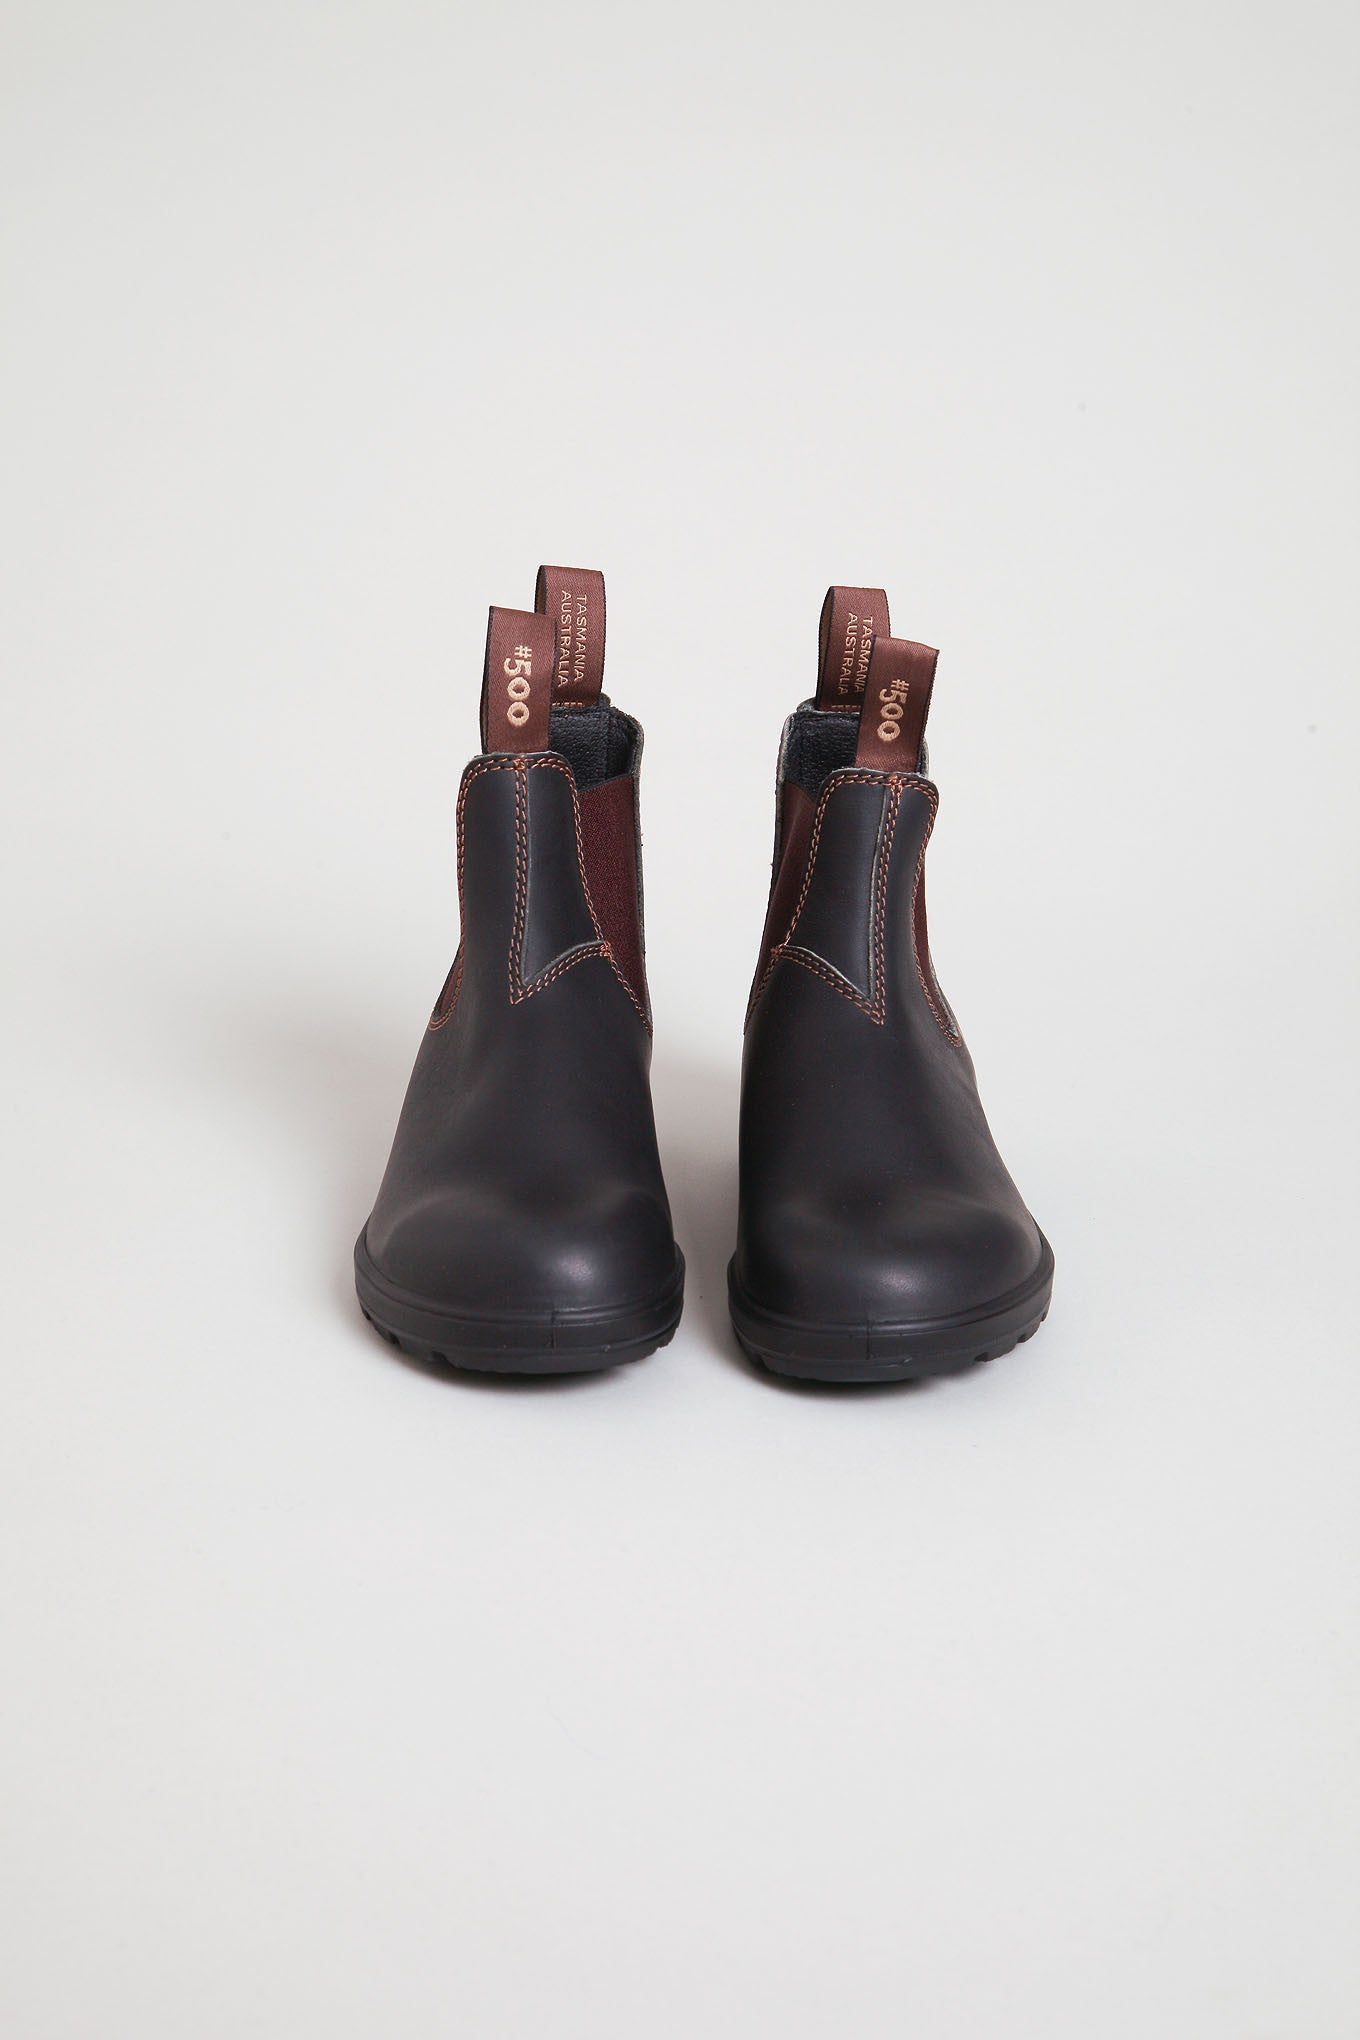 Blundstone / Elastic Boot - Brown